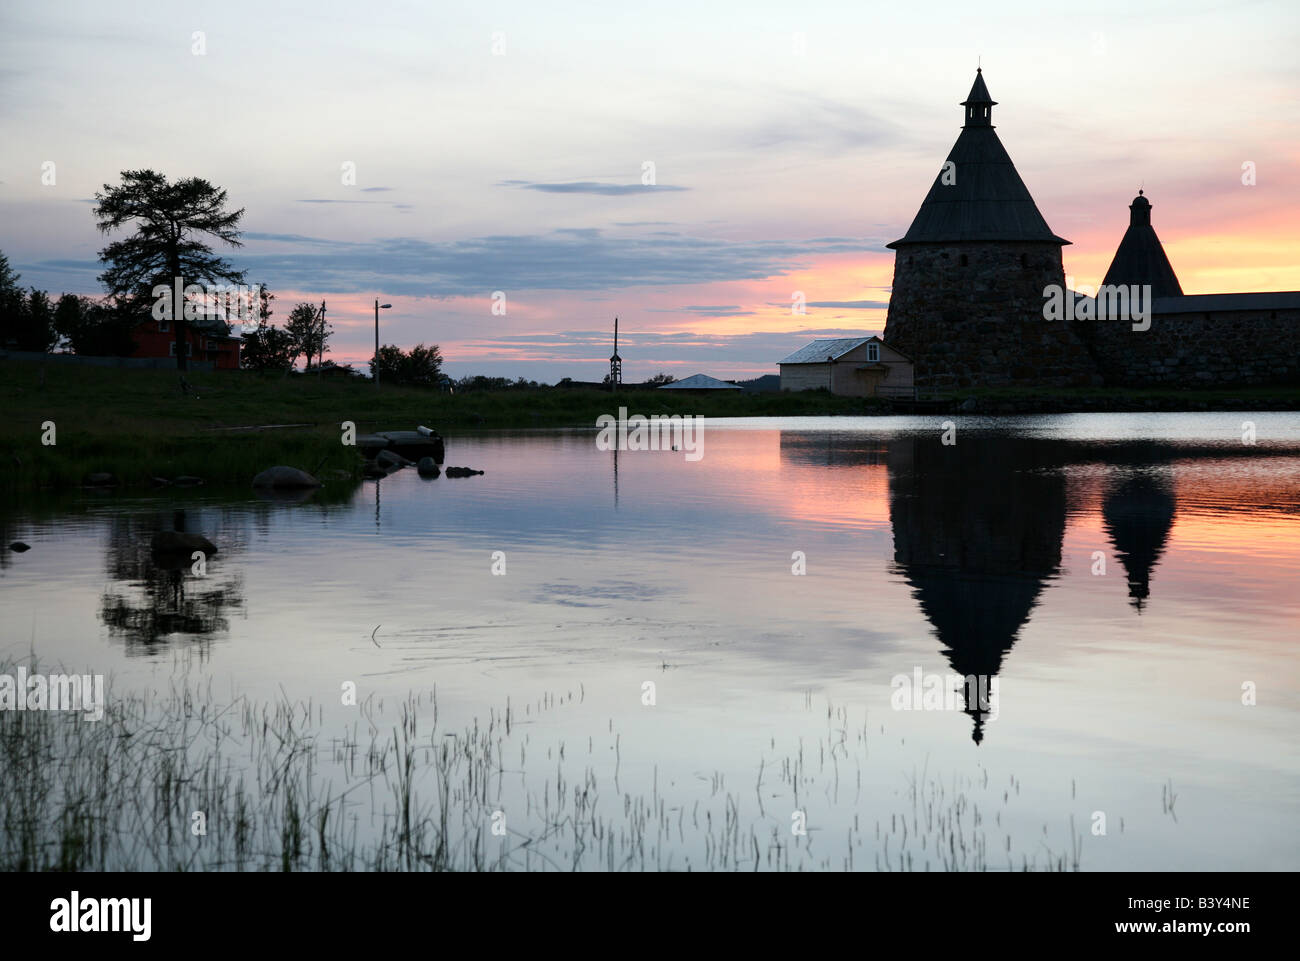 White Tower of the Solovetsky Monastery on the Solovetsky Islands in the White Sea, Russia. View from Saint Lake Stock Photo